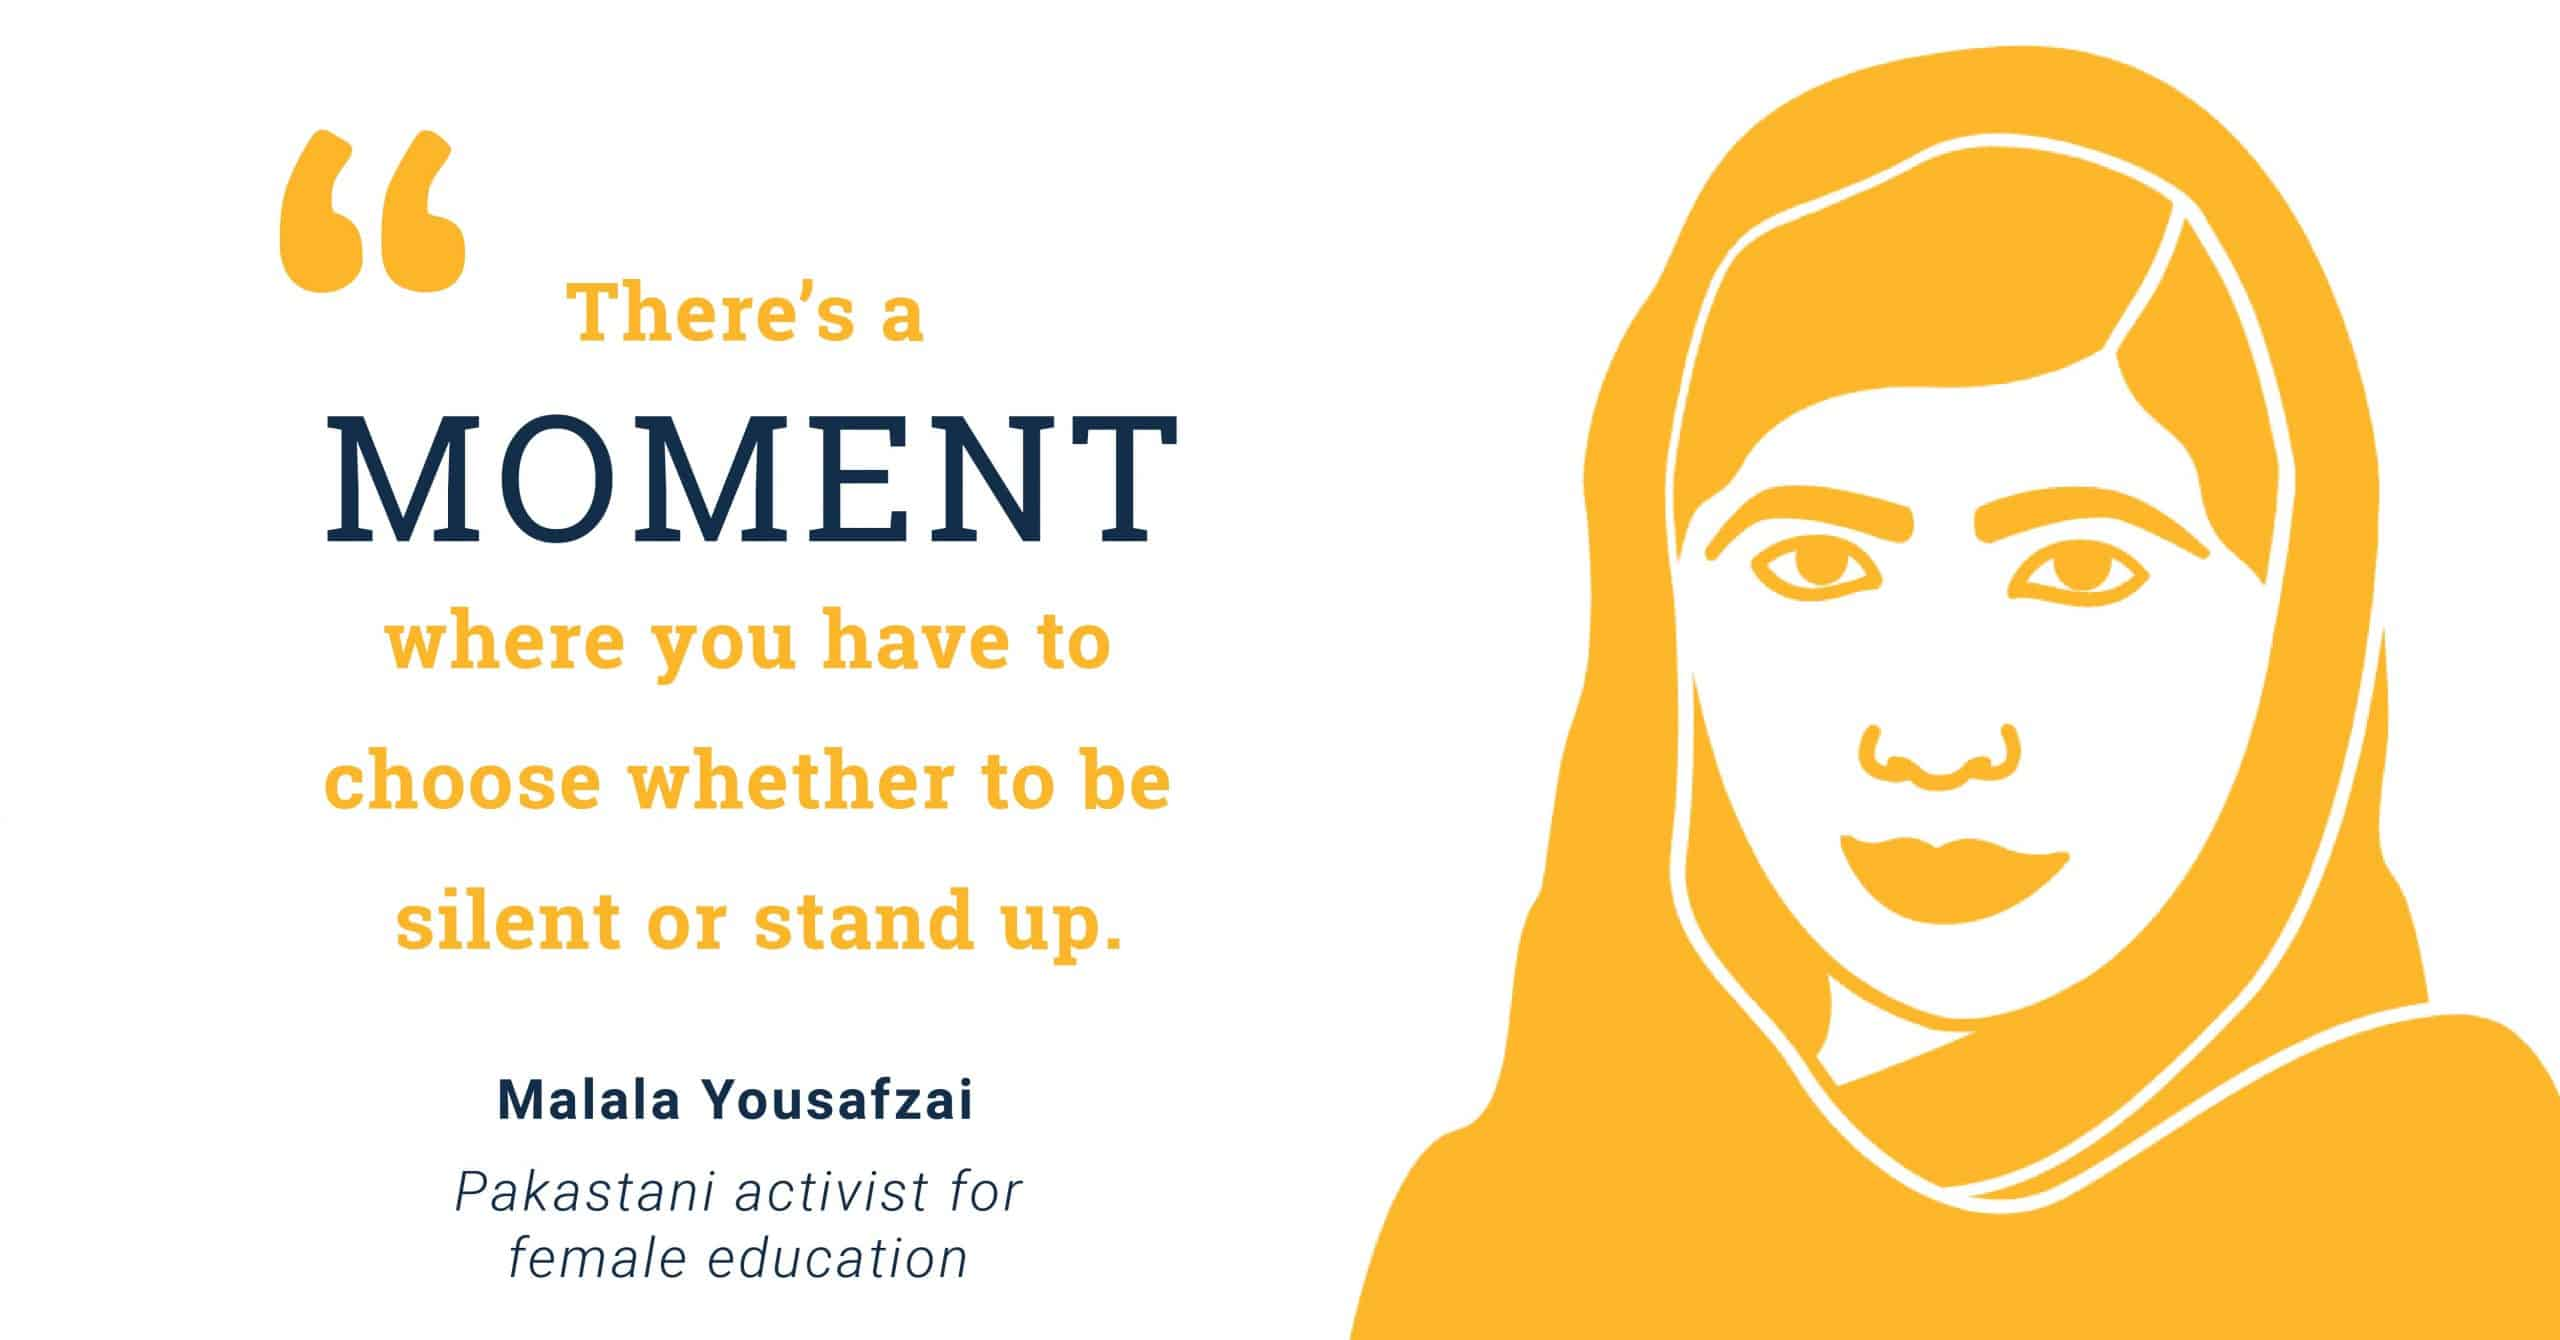 Inspiring quotes from women leaders and activists   The Commons